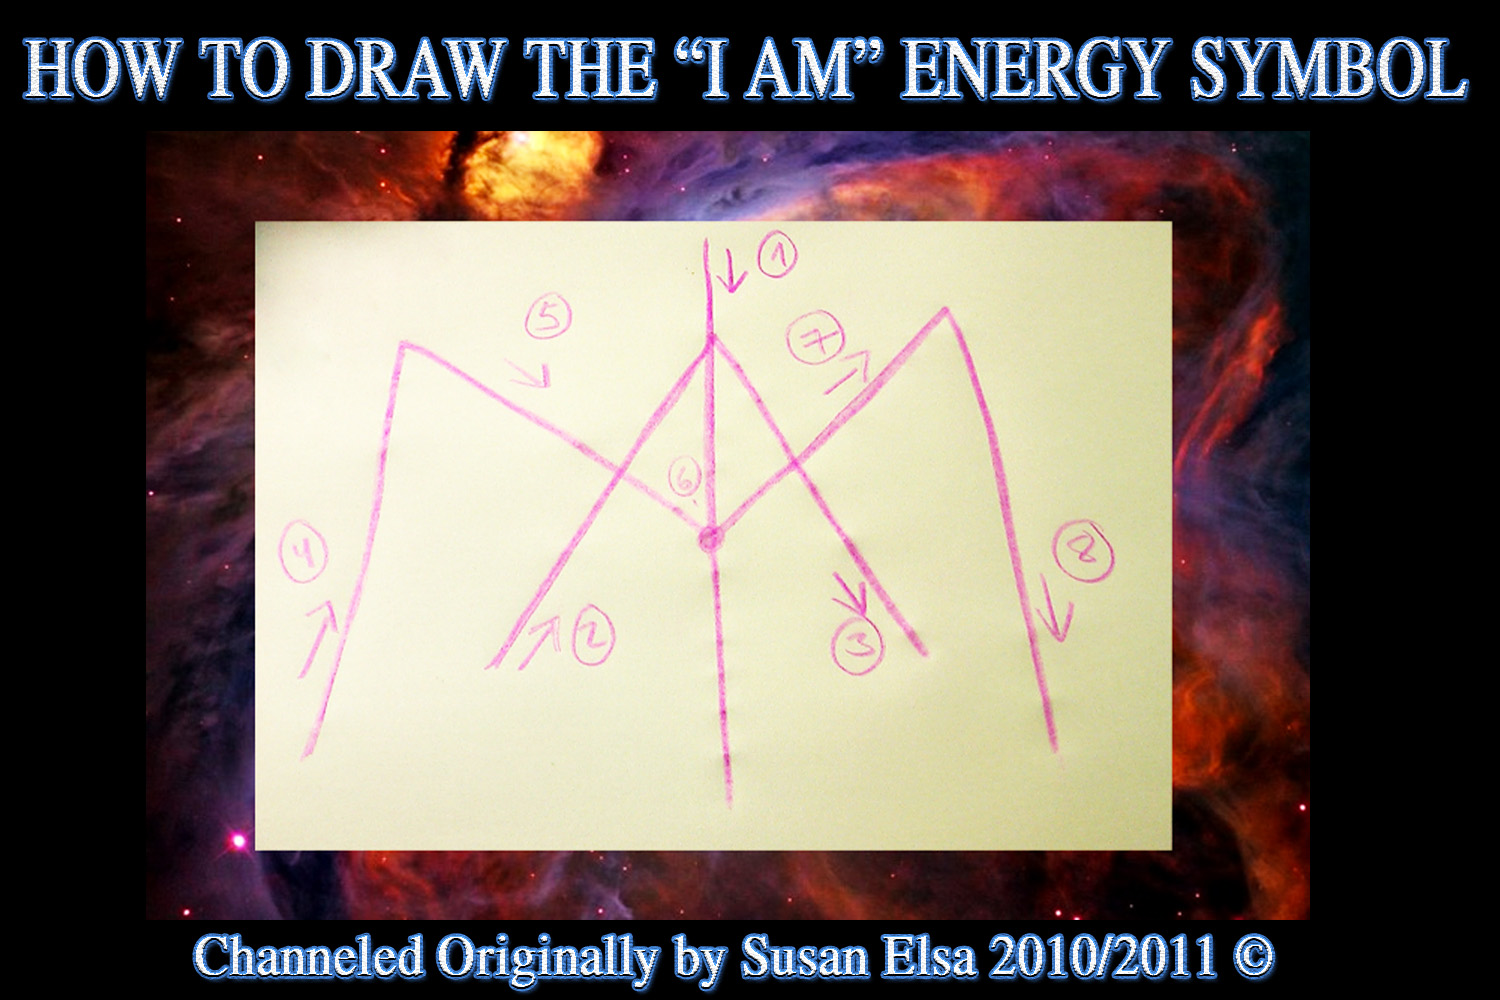 Archangel michaels marriage how to draw archangel michaels i am i am energy symbol how to draw it into the aura archangel michaels marriage biocorpaavc Images